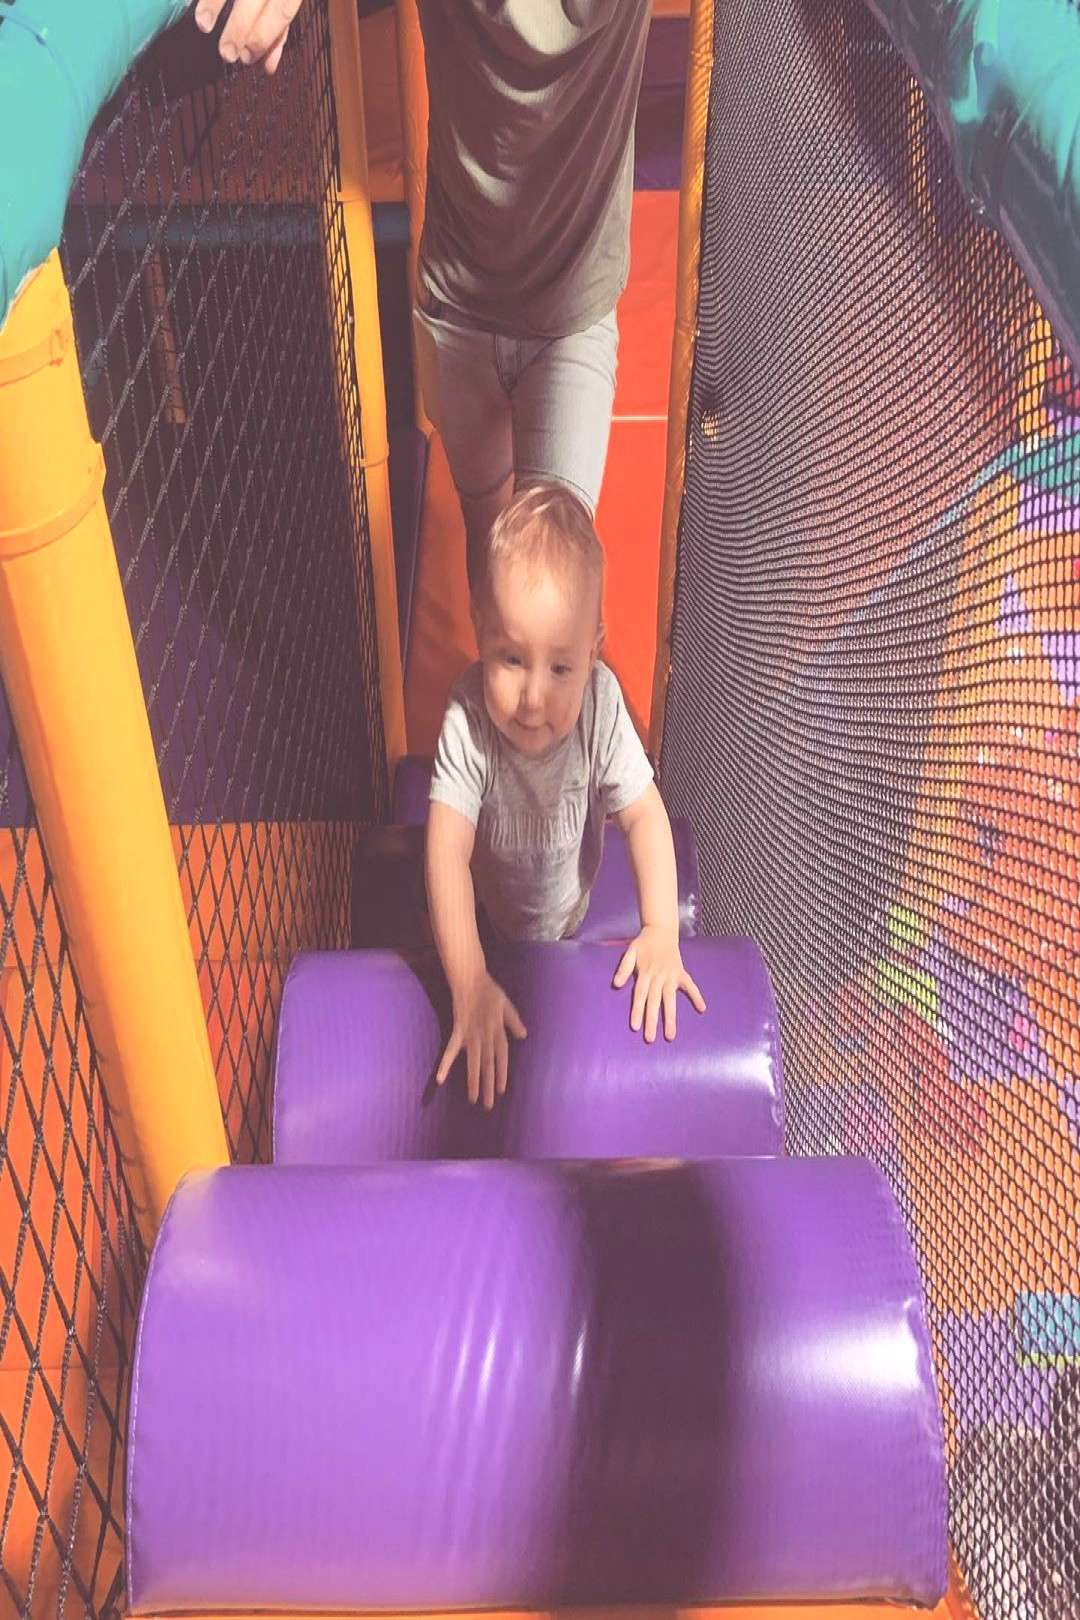 #playtimefun #kidsworld #playtime #person #arlo #ball #had #a #1 Playtime- Arlo had a ball. #playtimefun #kidsworldYou can find Kidsworld and more on our website.Playtime- Arlo had a ball. #playtimefun #kidsworld